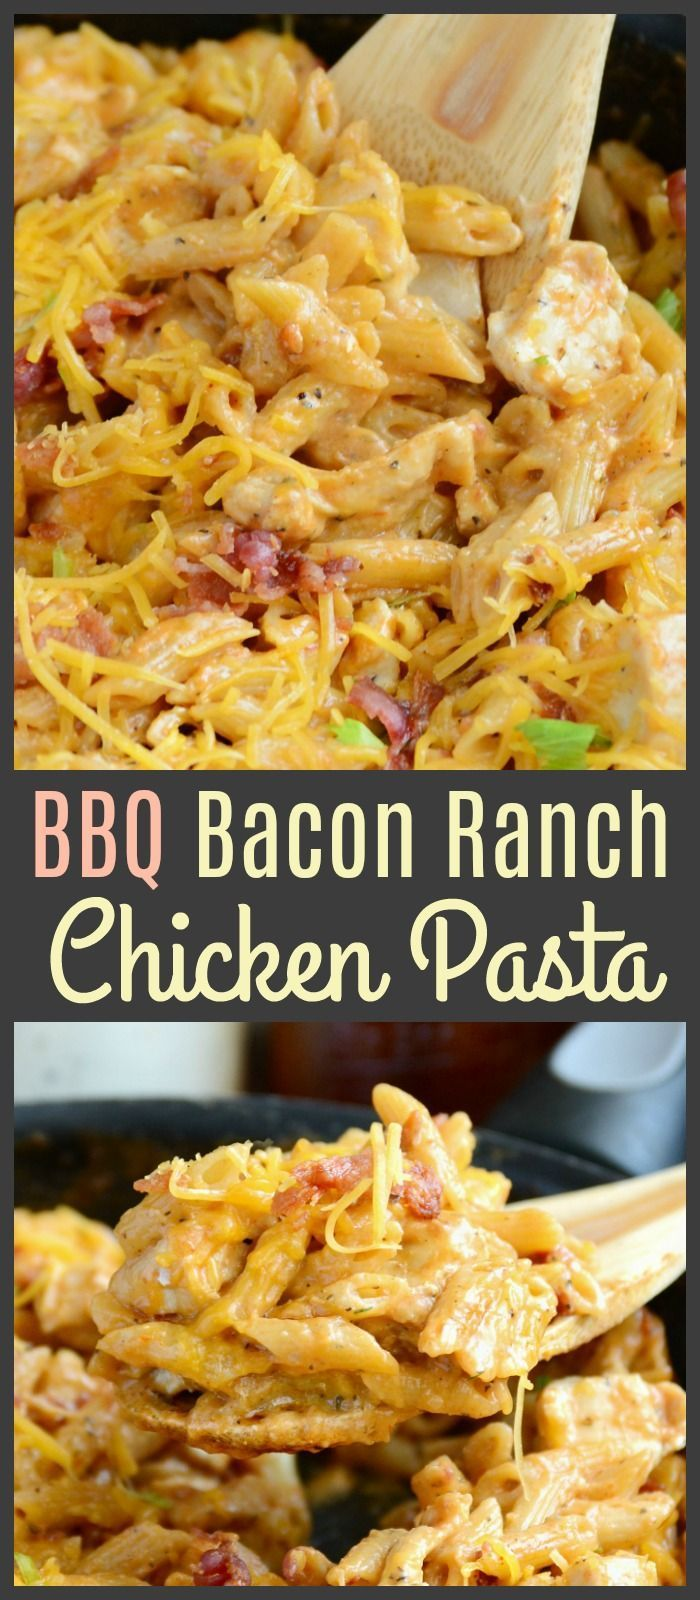 6541 best yummiest recipes a radical pinning experiment images on bbq chicken bacon ranch pasta has all the flavors you love in an easy one pot dinner recipe forumfinder Choice Image